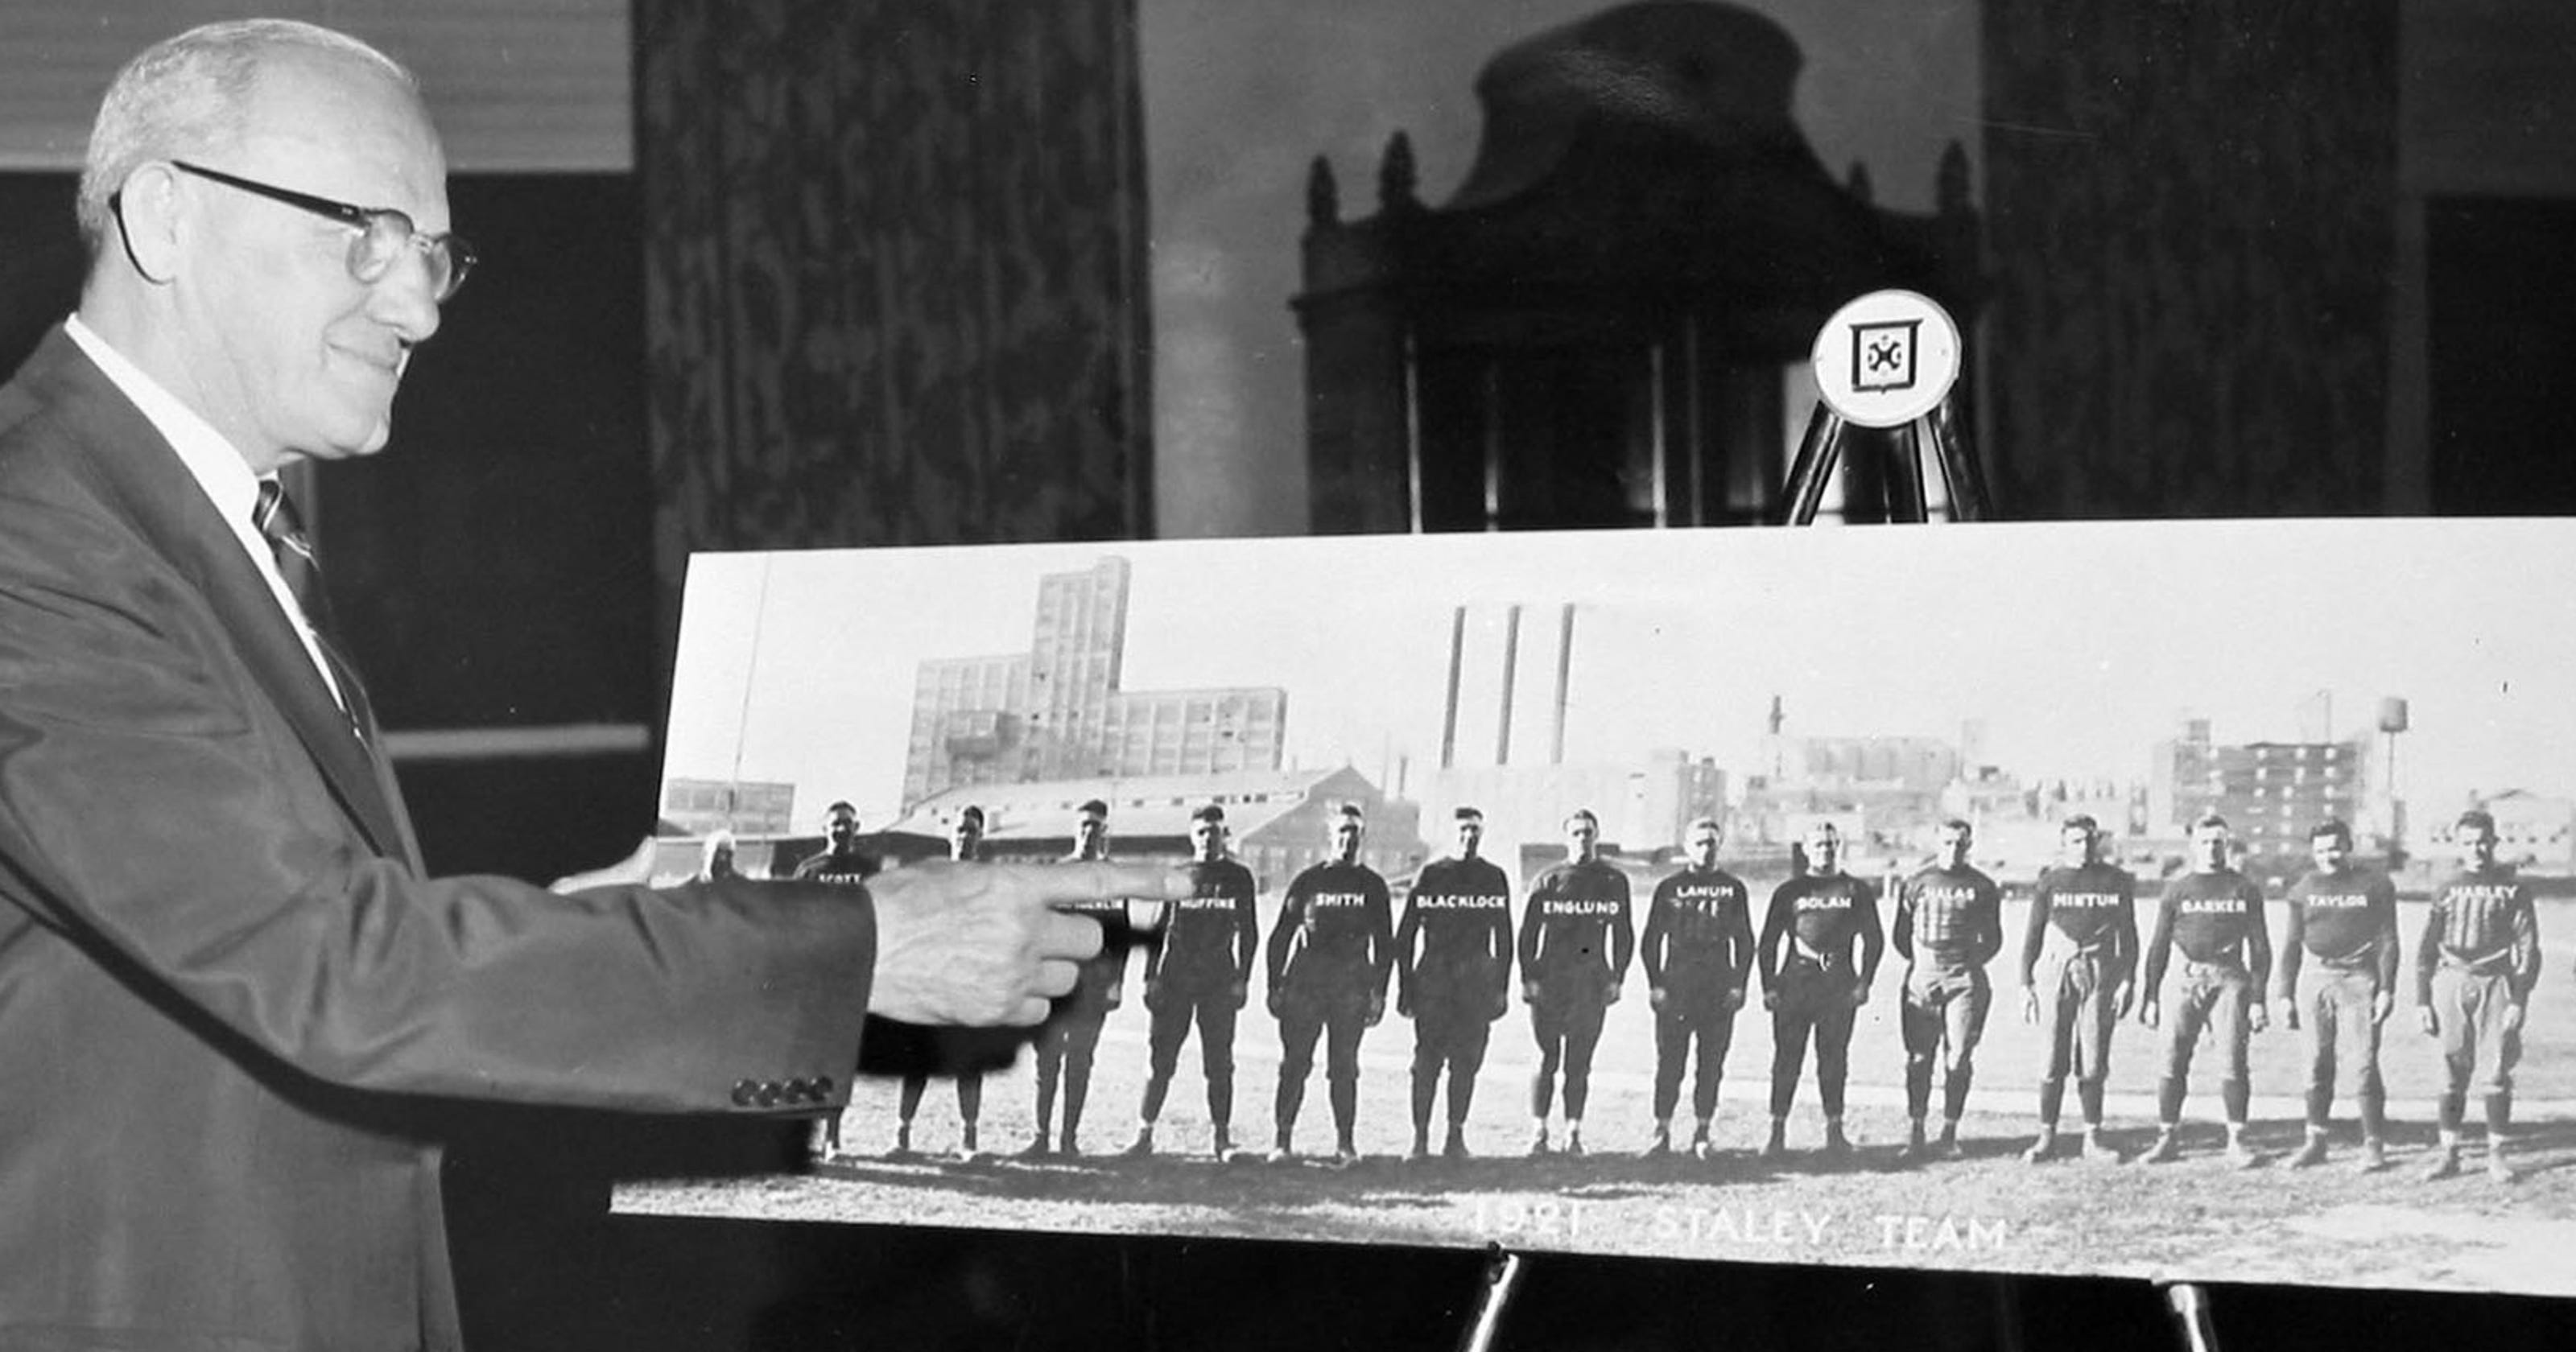 A look at the first decade of the NFL, the 1920s